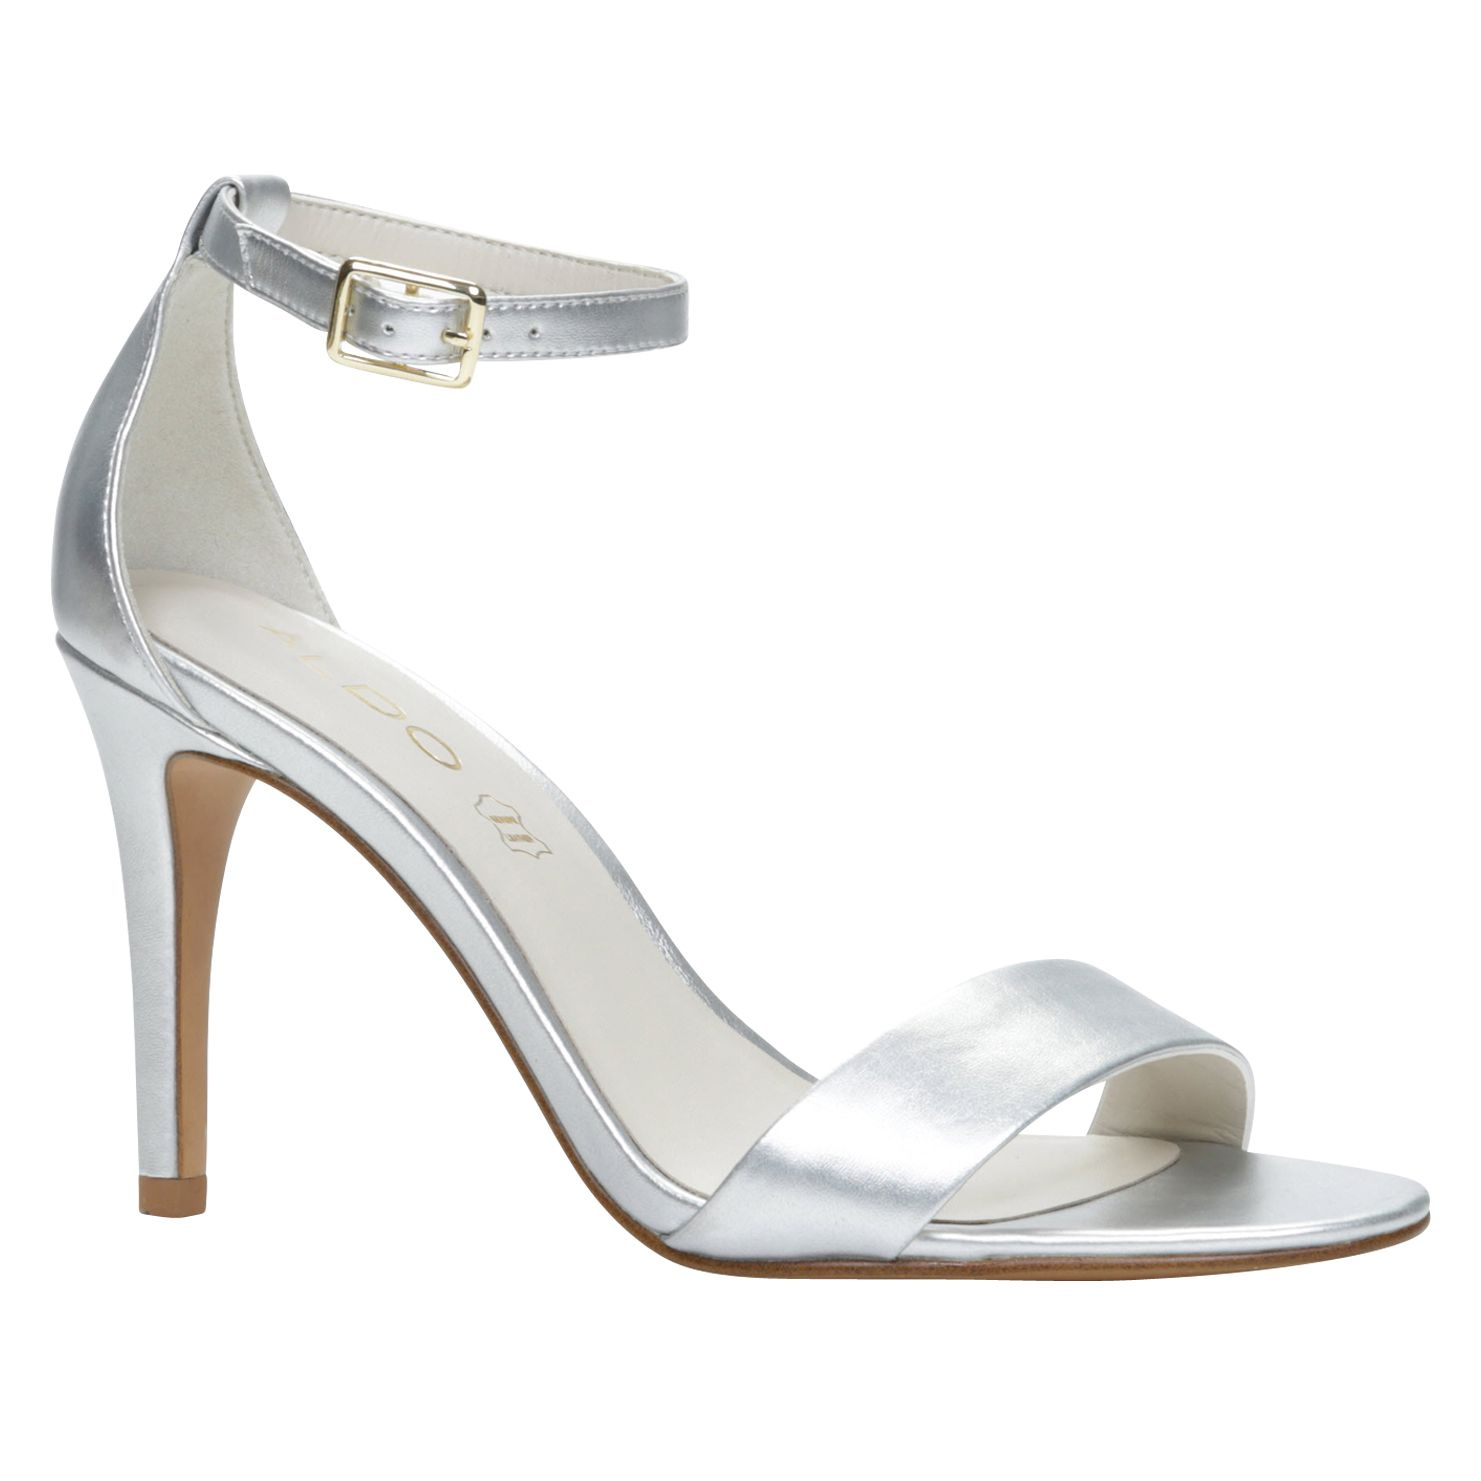 silver high heels with ankle strap